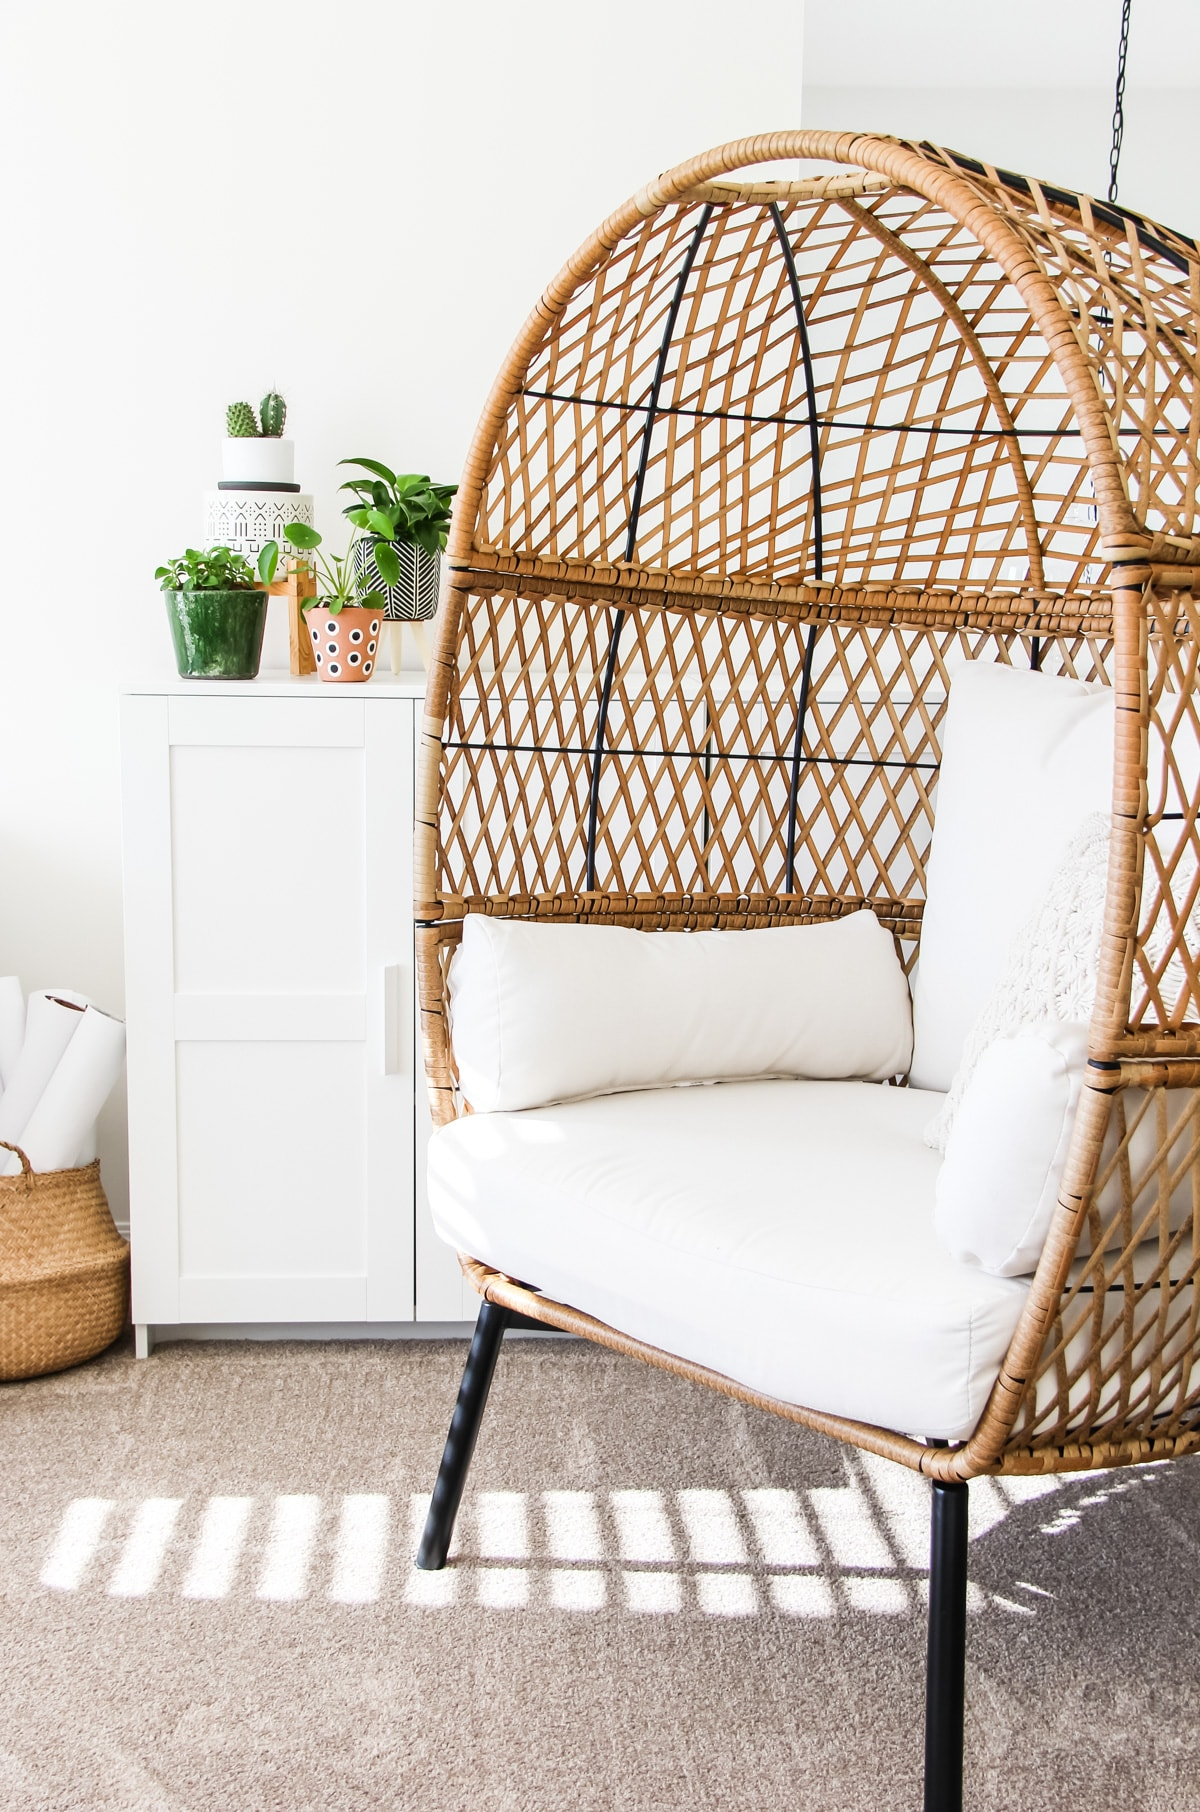 a brown wicker egg chair. in the background is a white shelf with a small collection of plants